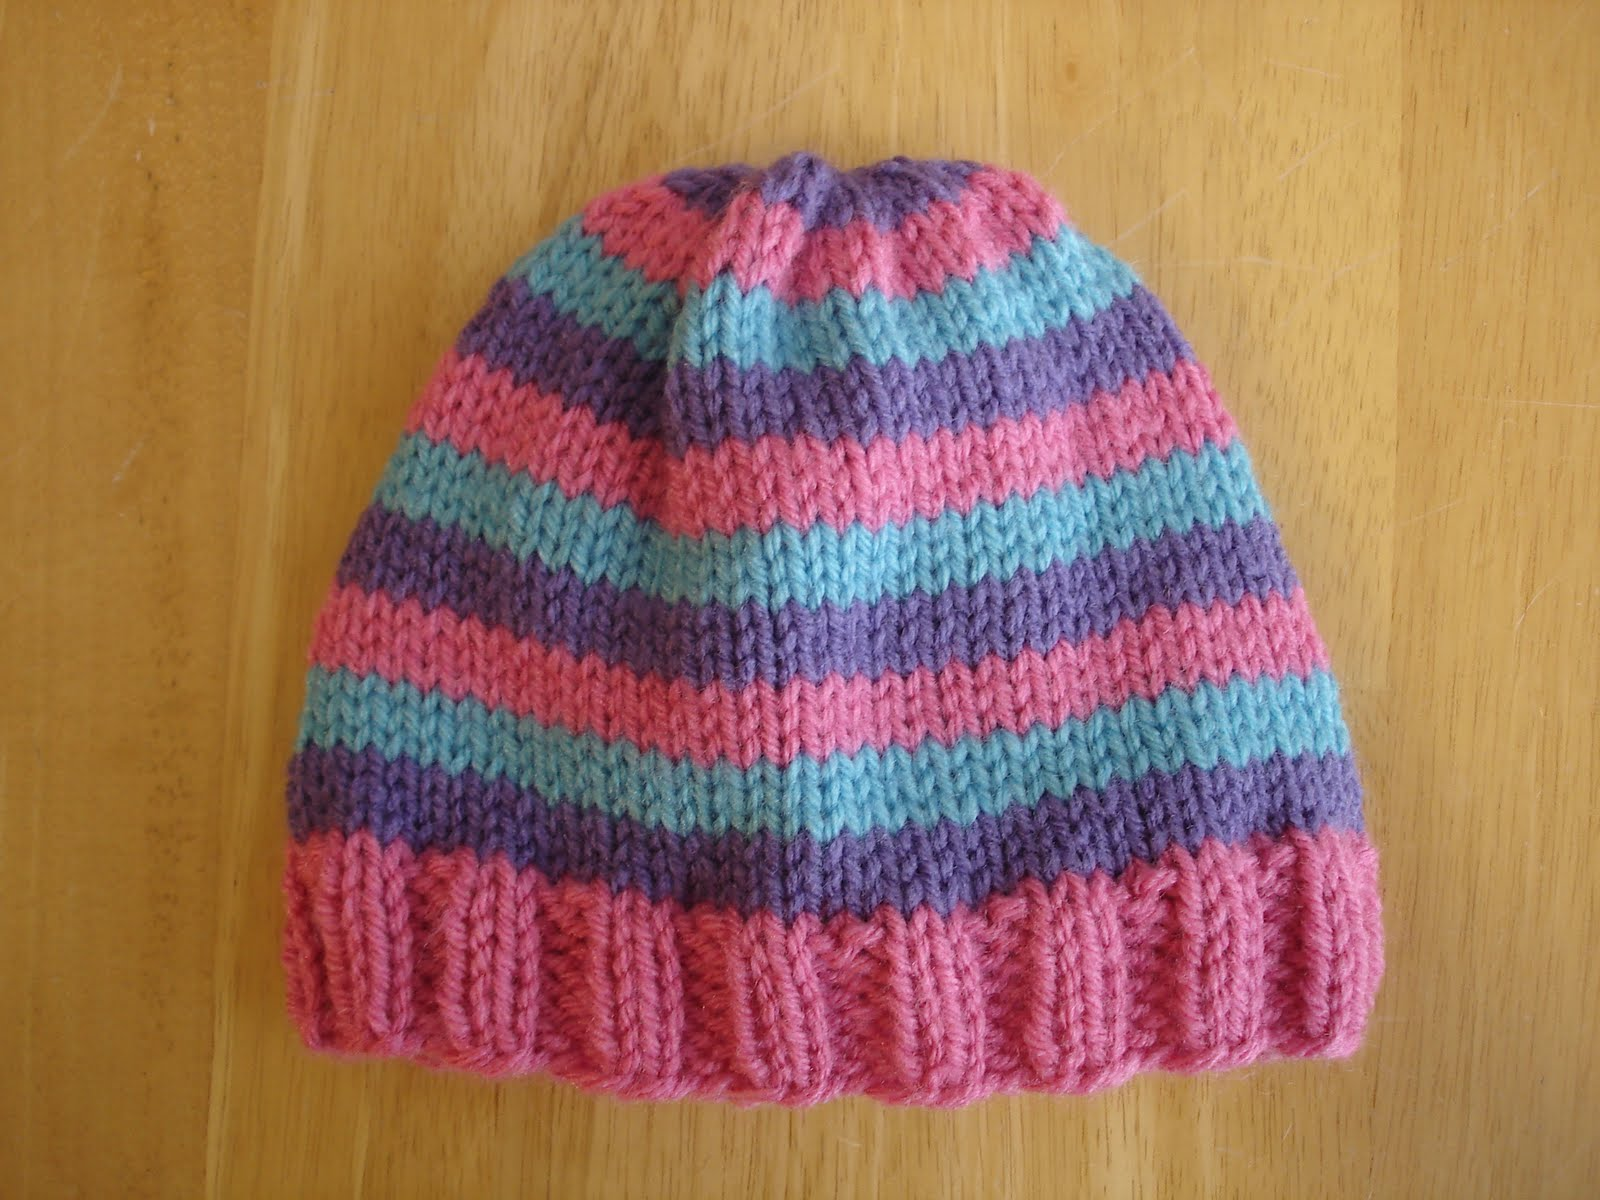 Free Knitting Patterns Hats For Children : Fiber Flux: Free Knitting Pattern...Super Pink Toddler Hat!